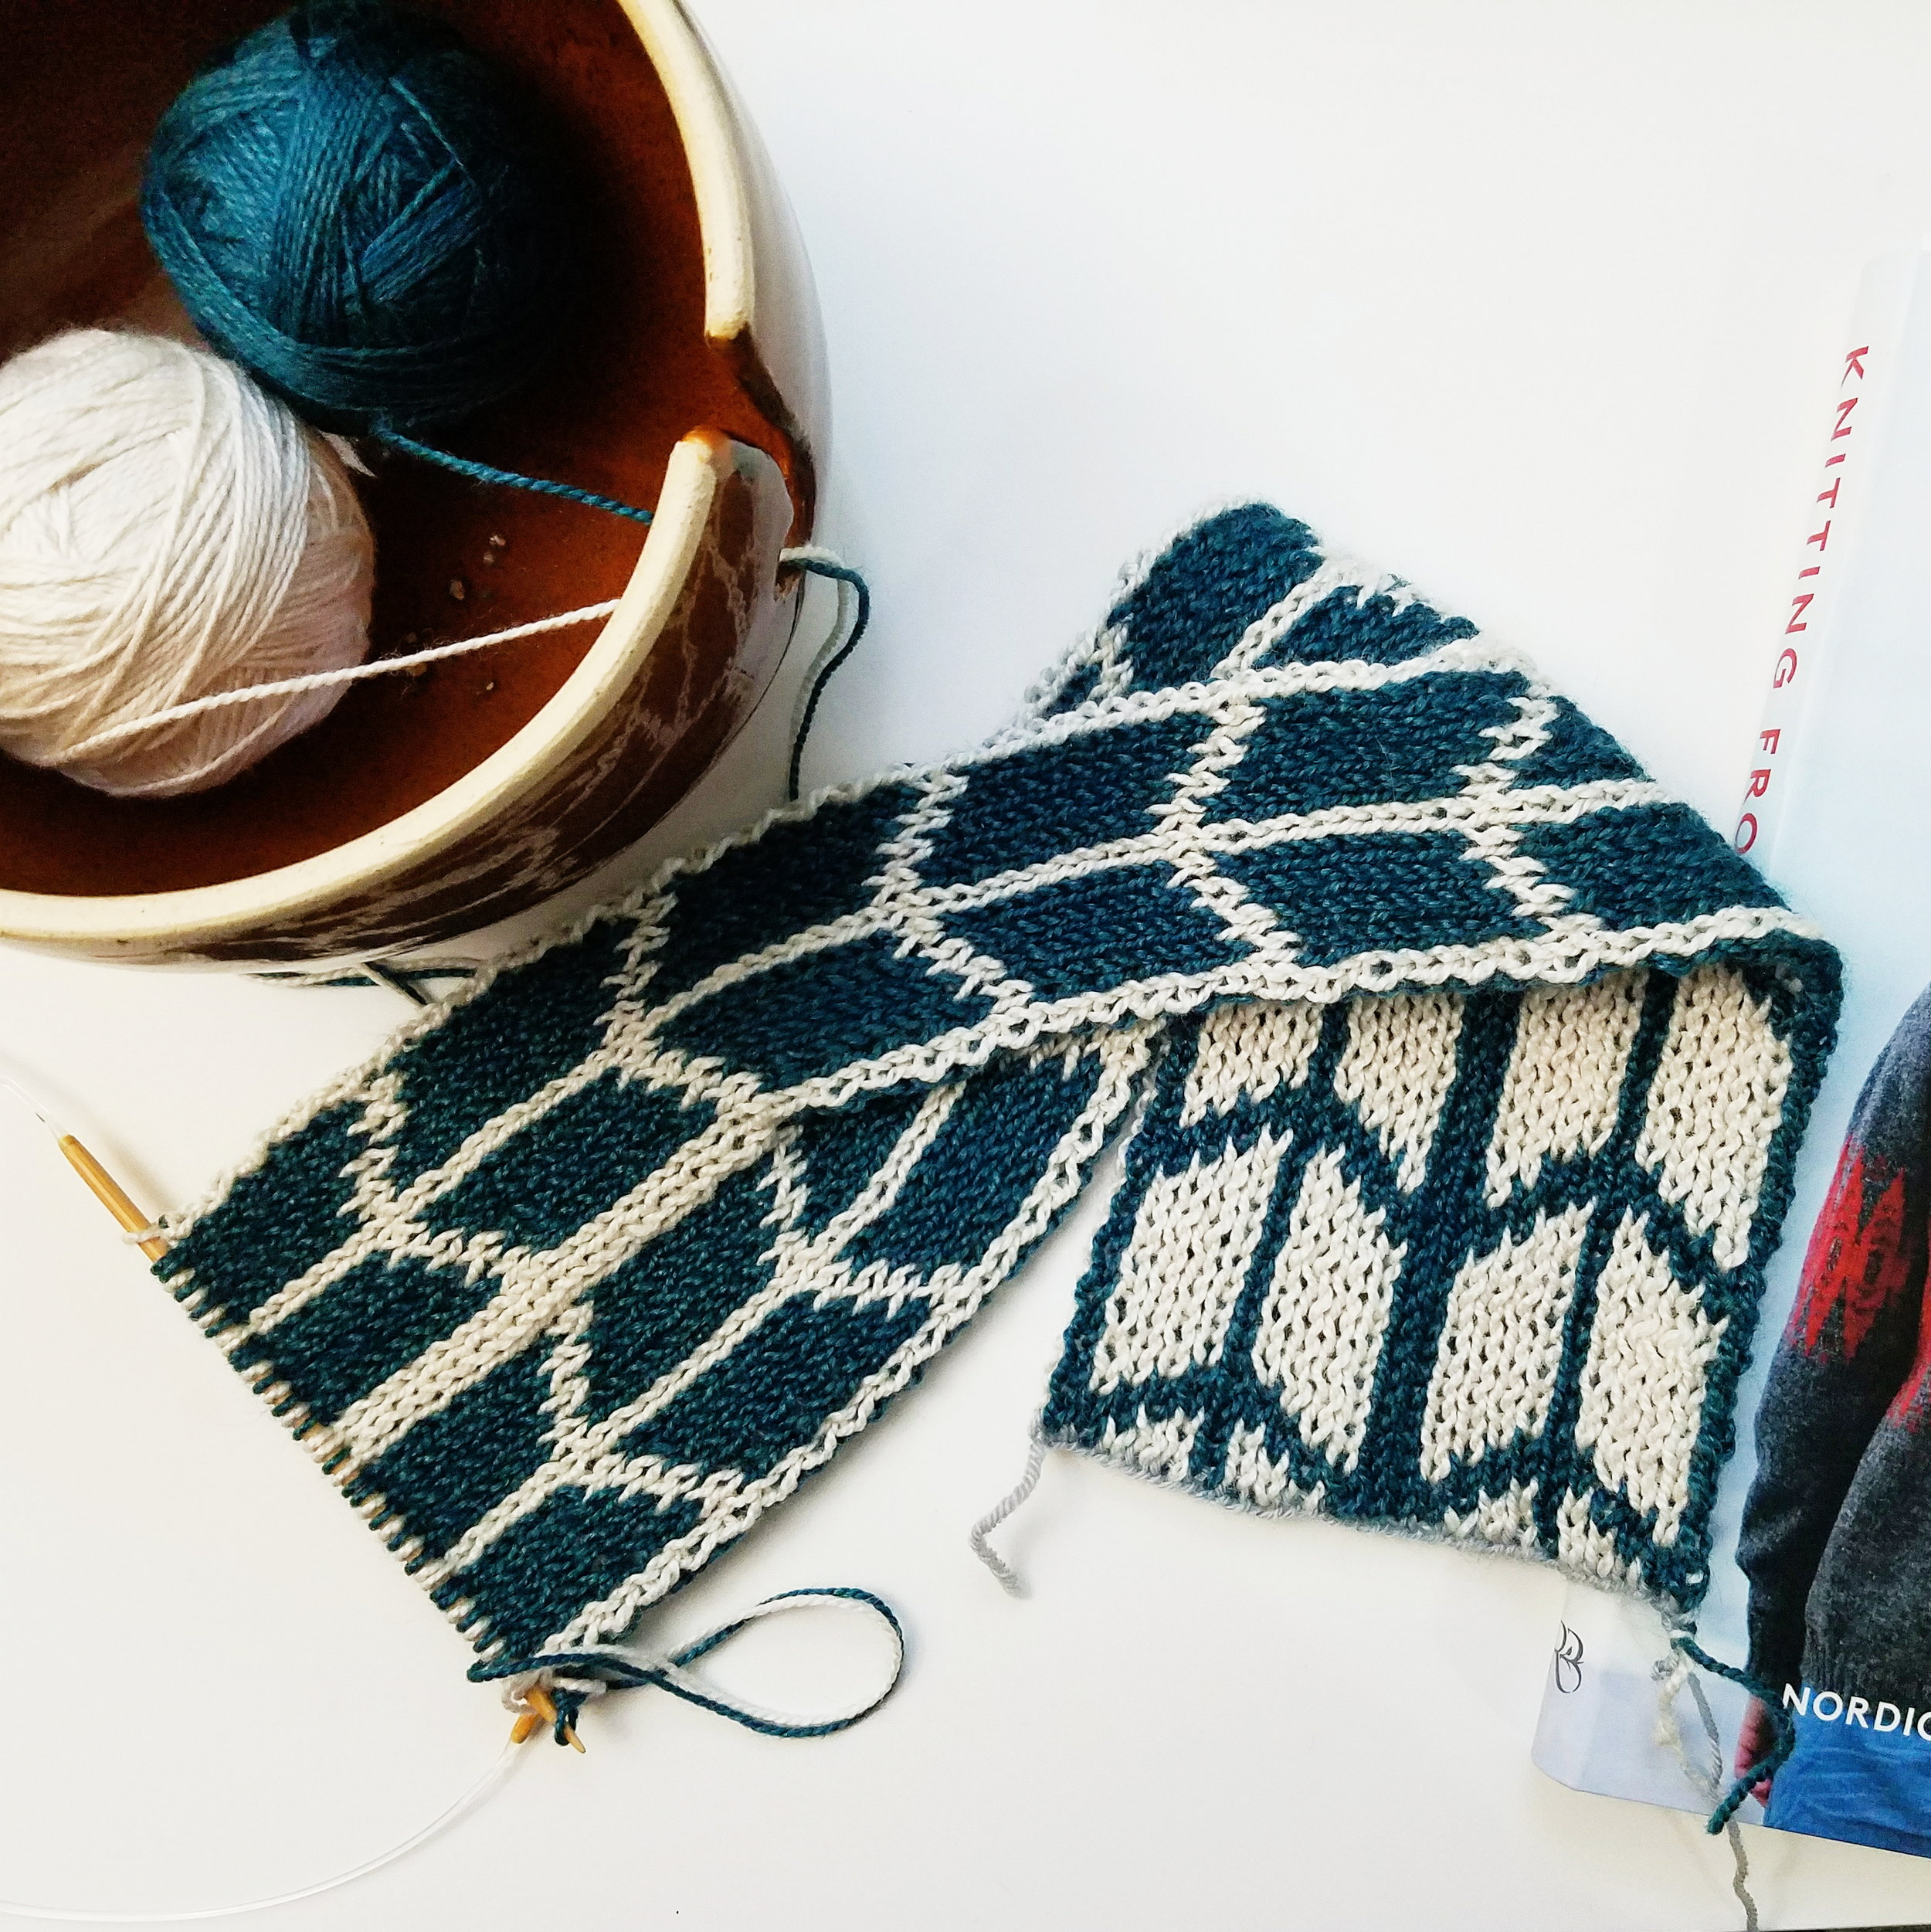 Knitting up a quick earwarmer using a new (and outrageously cool) technique to produce reversible knits